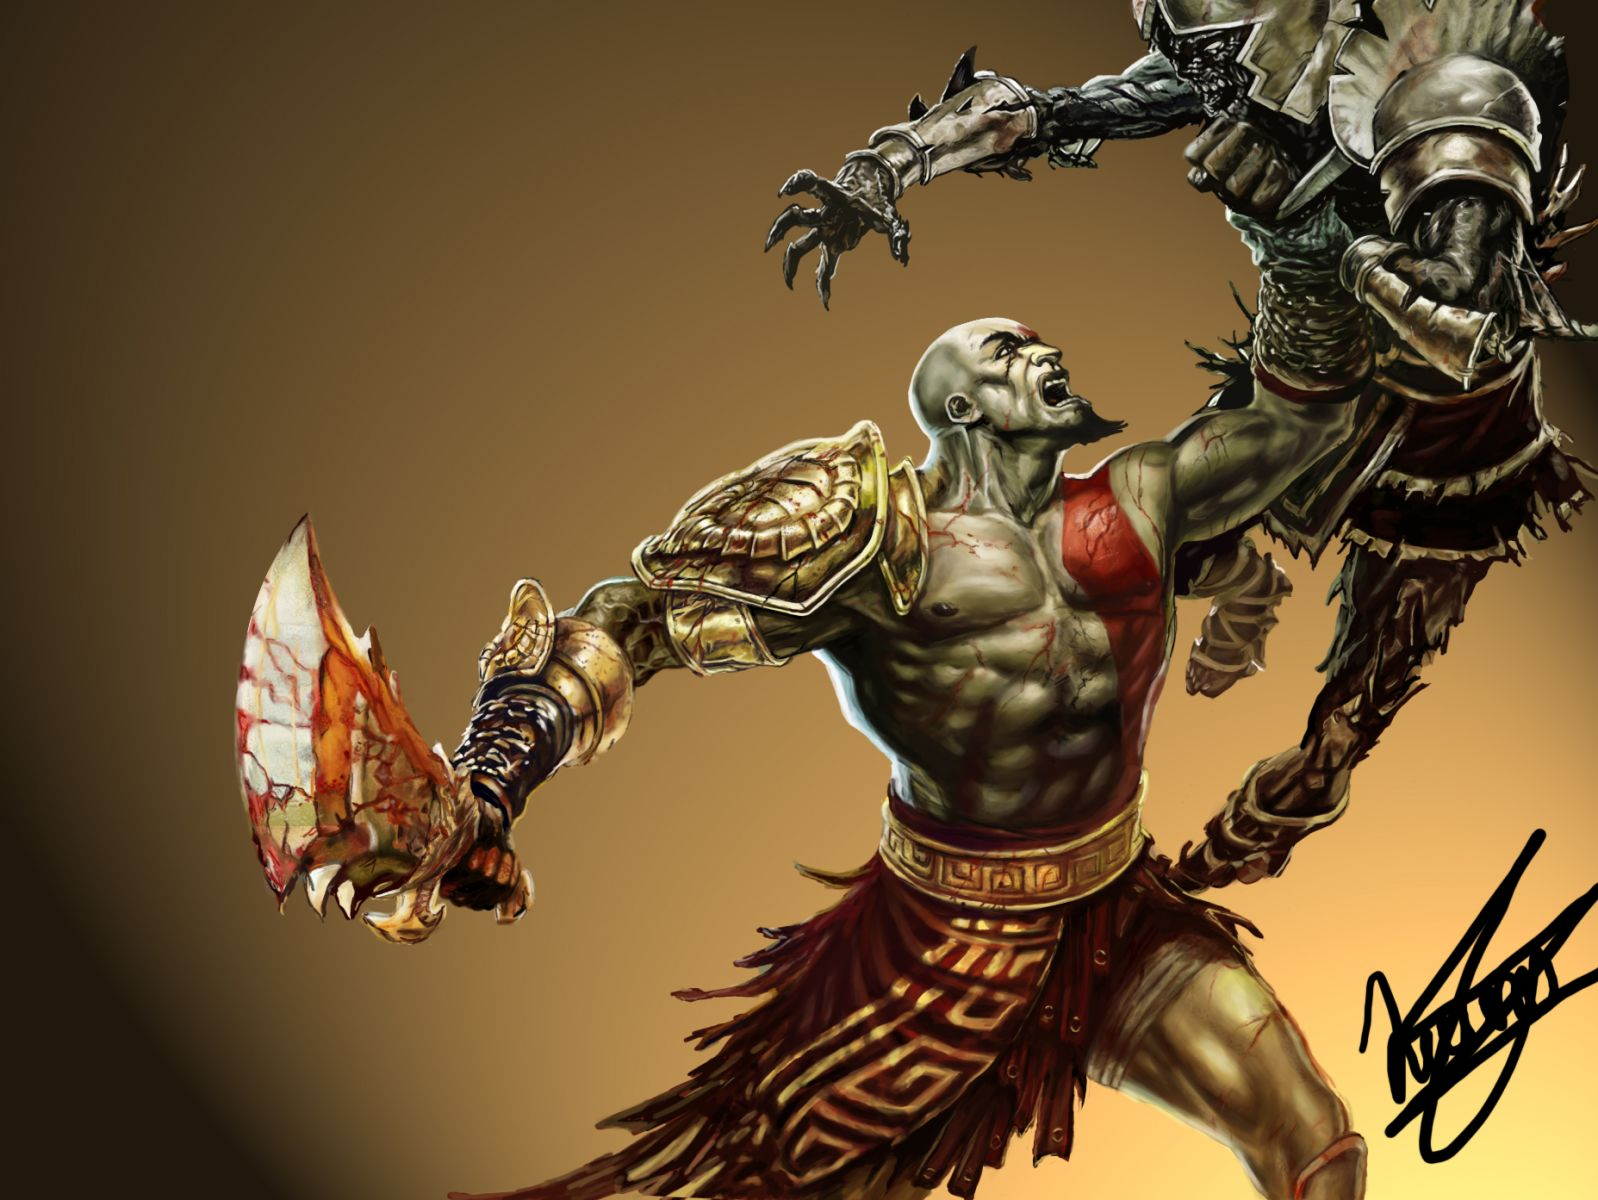 Mi Dibujo De Kratos (God Of War) Digital + Speed Painting